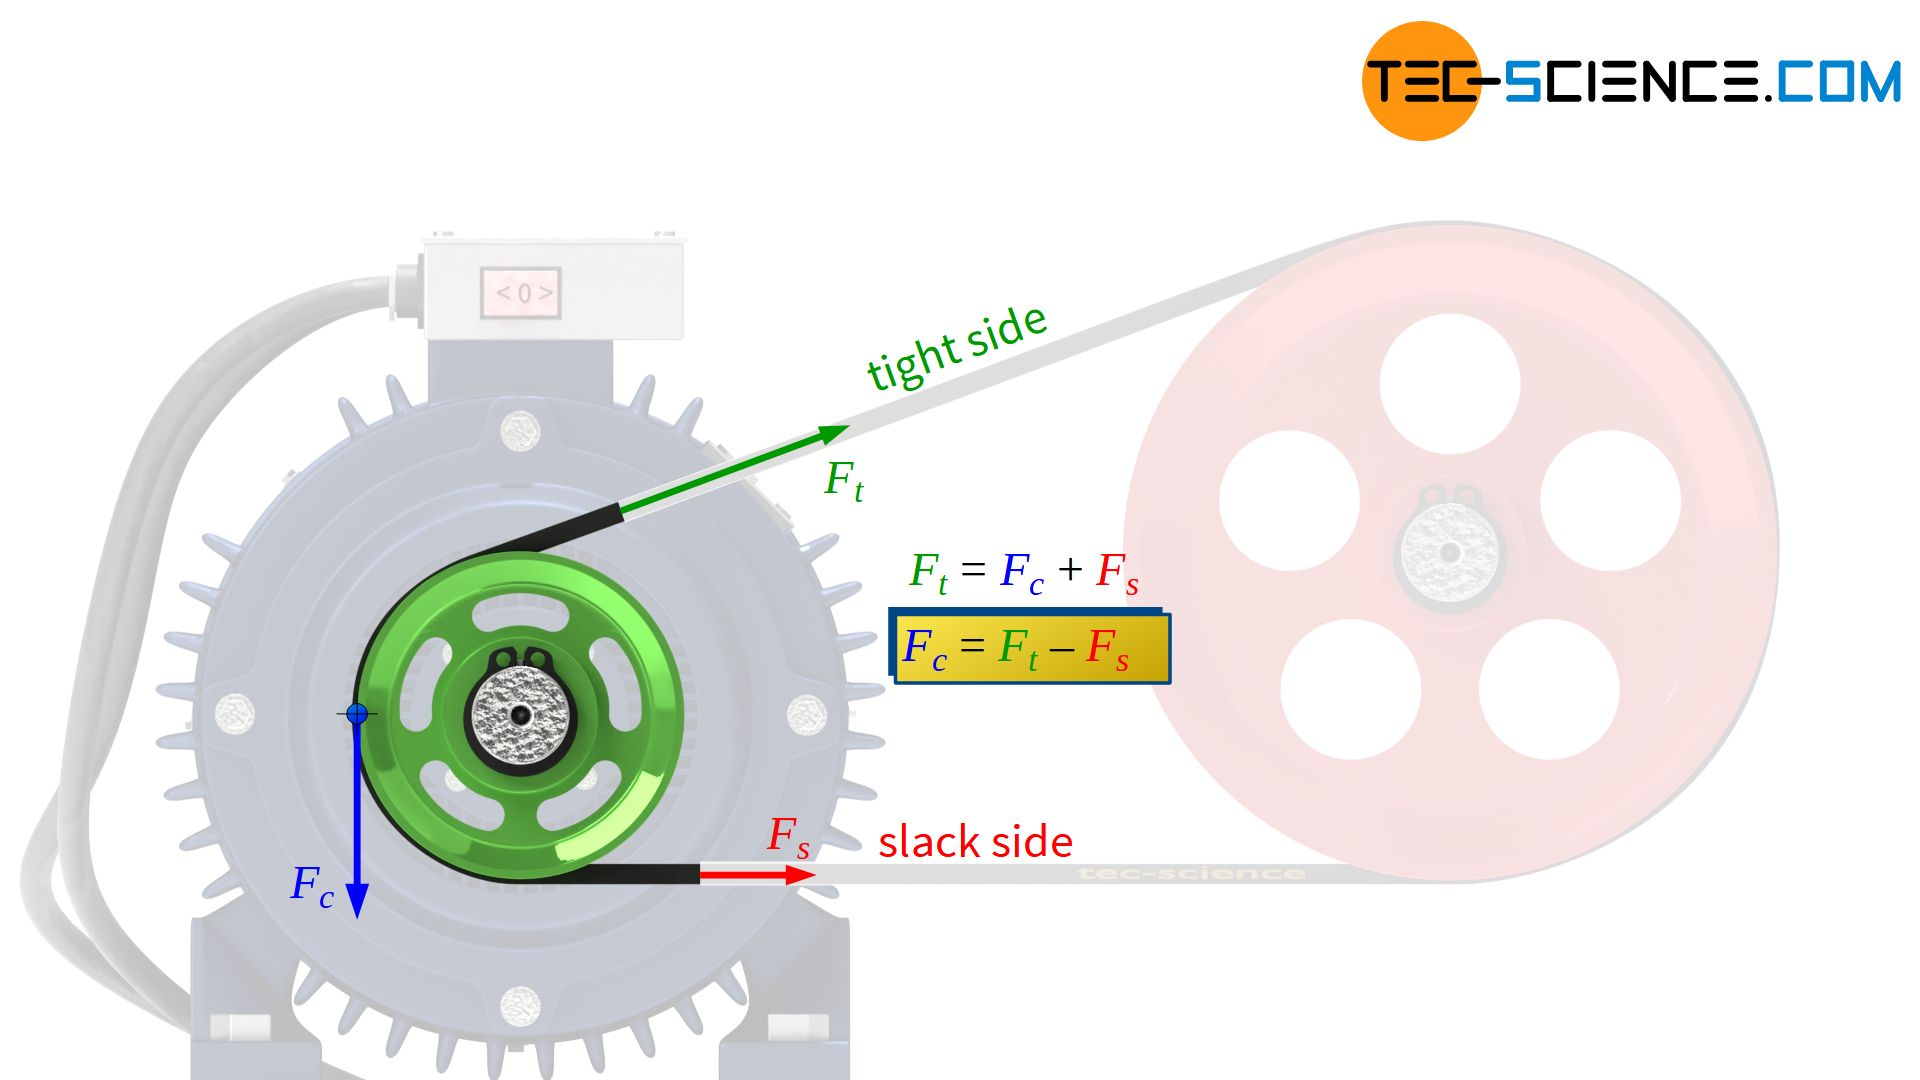 Relationship between circumferential force and tight side and slack side force